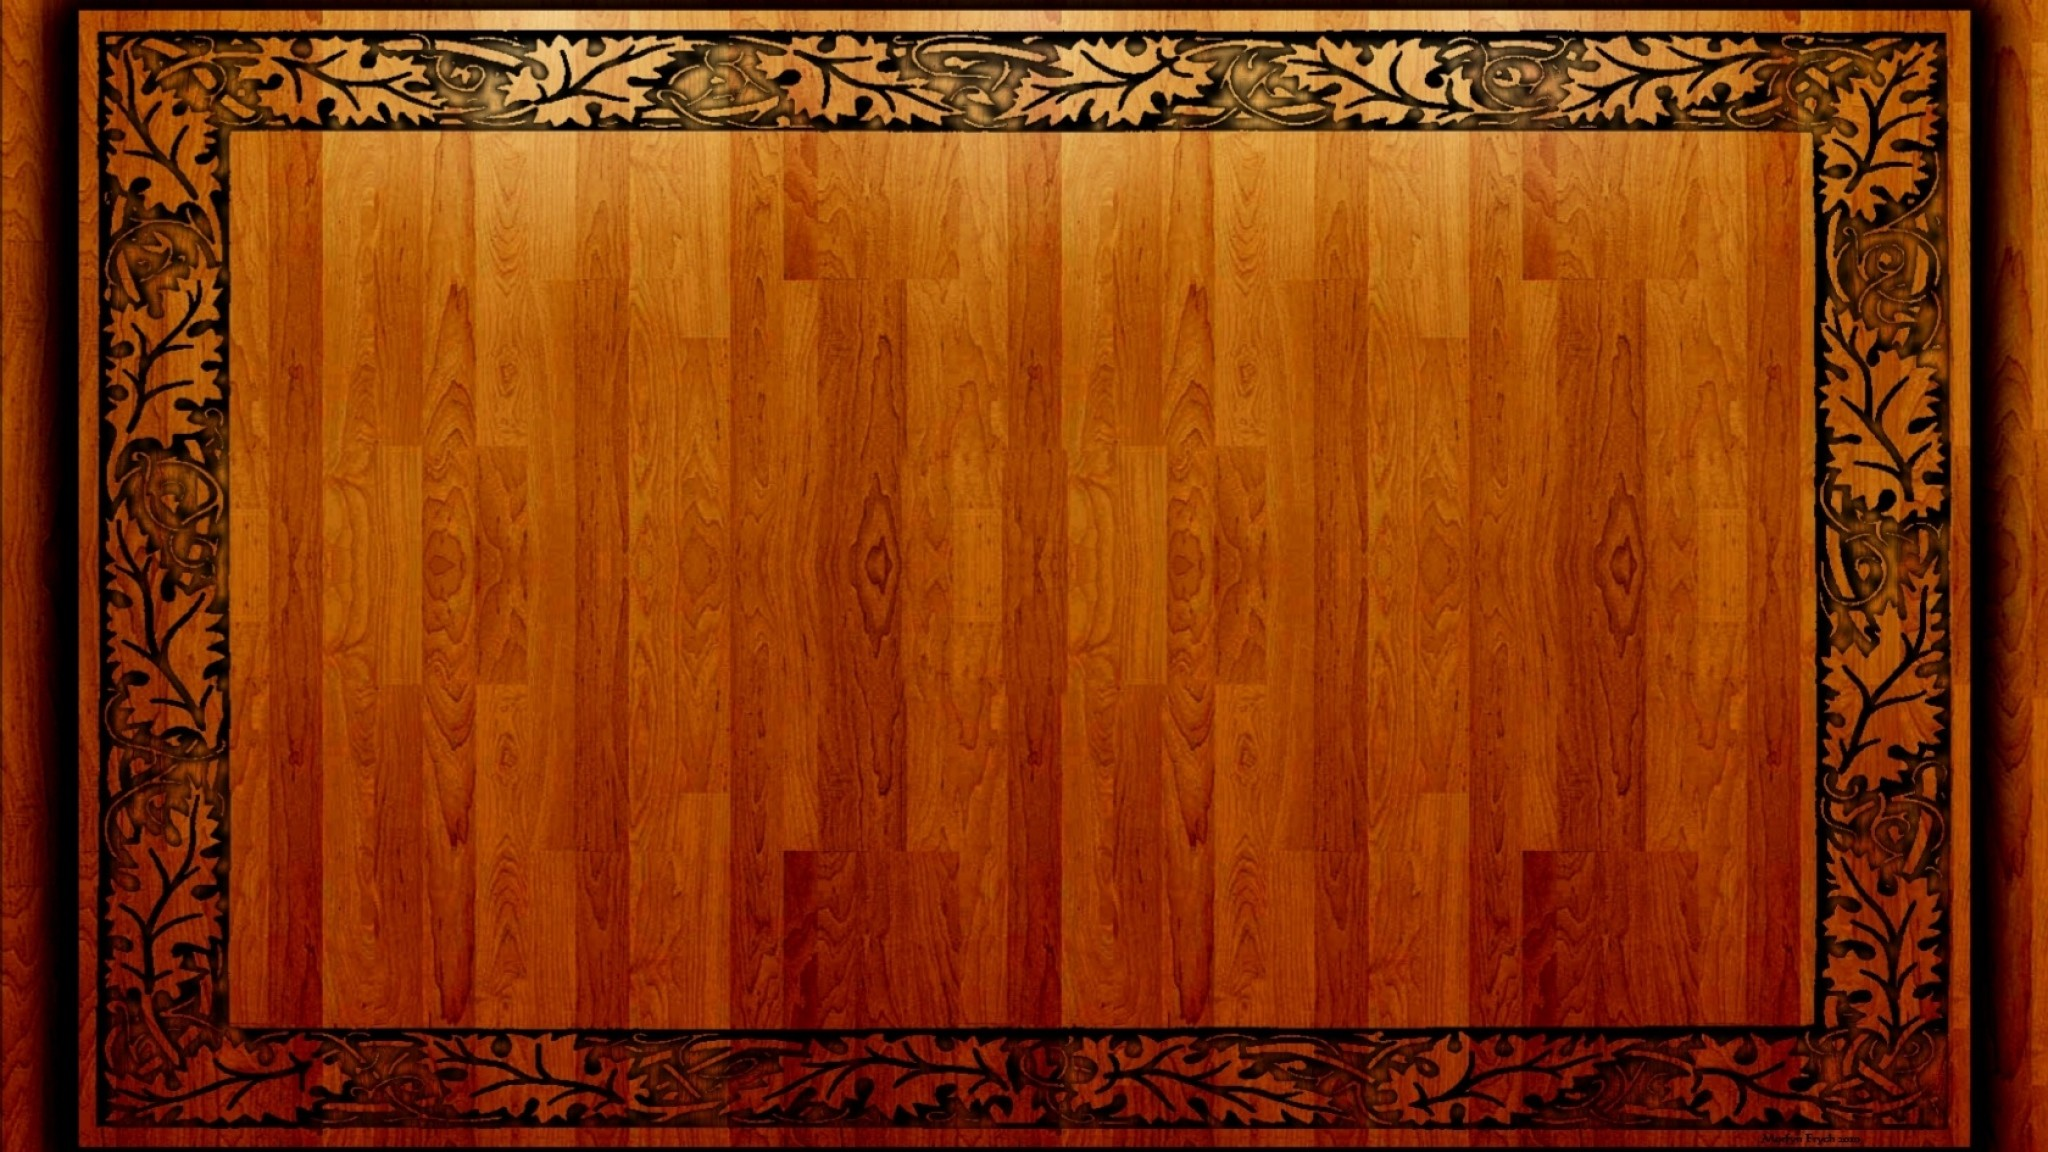 Wallpaper surface, wood, pattern, texture, background